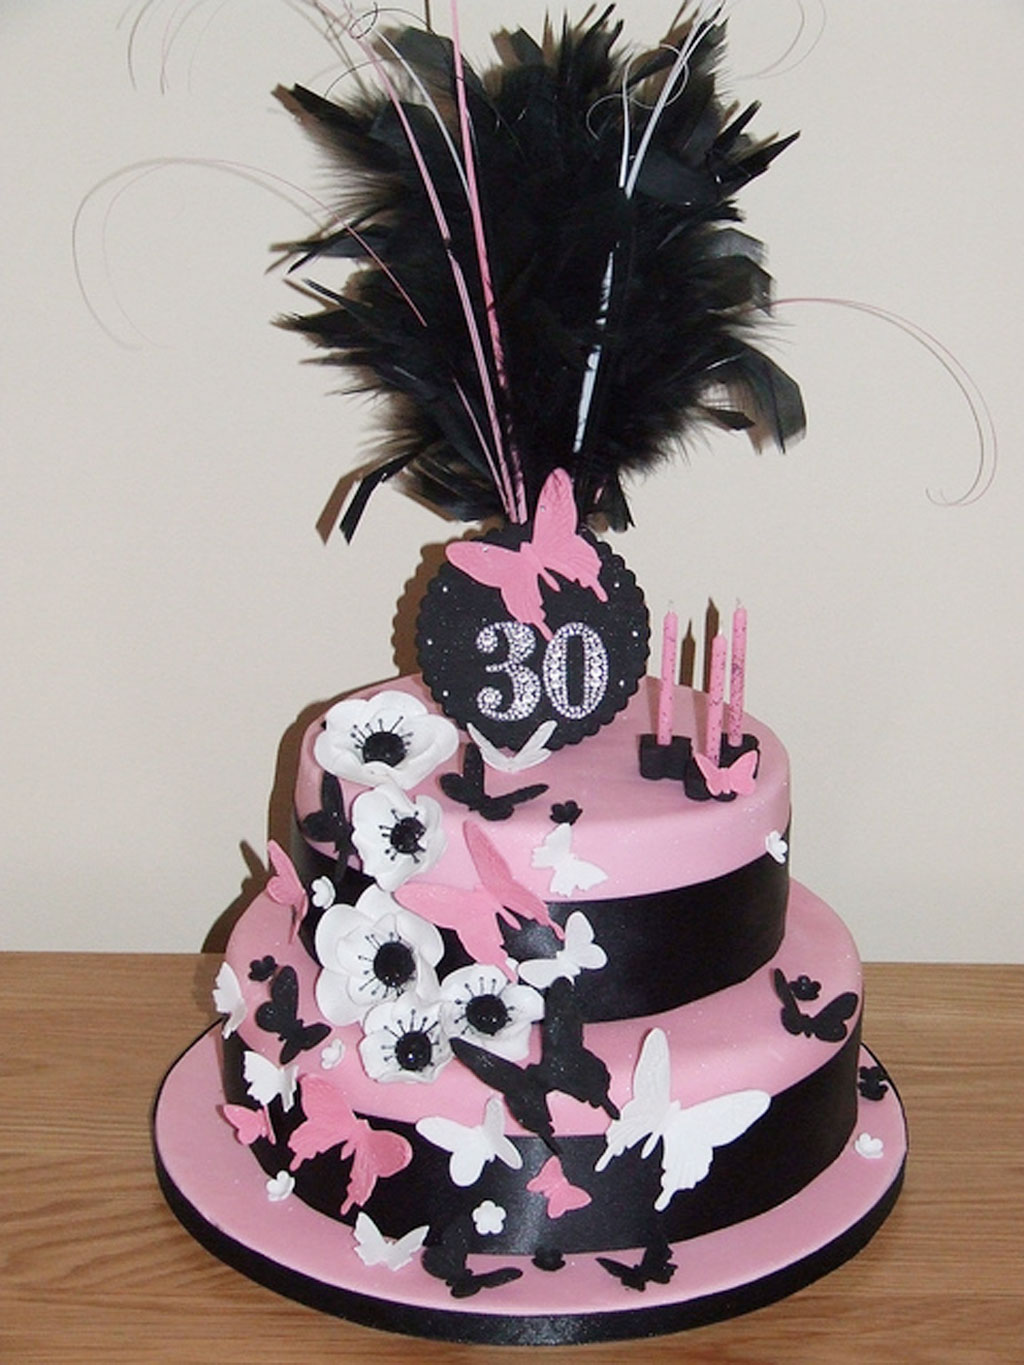 Birthday Cake Ideas For Women Birthday Cake - Cake Ideas ...